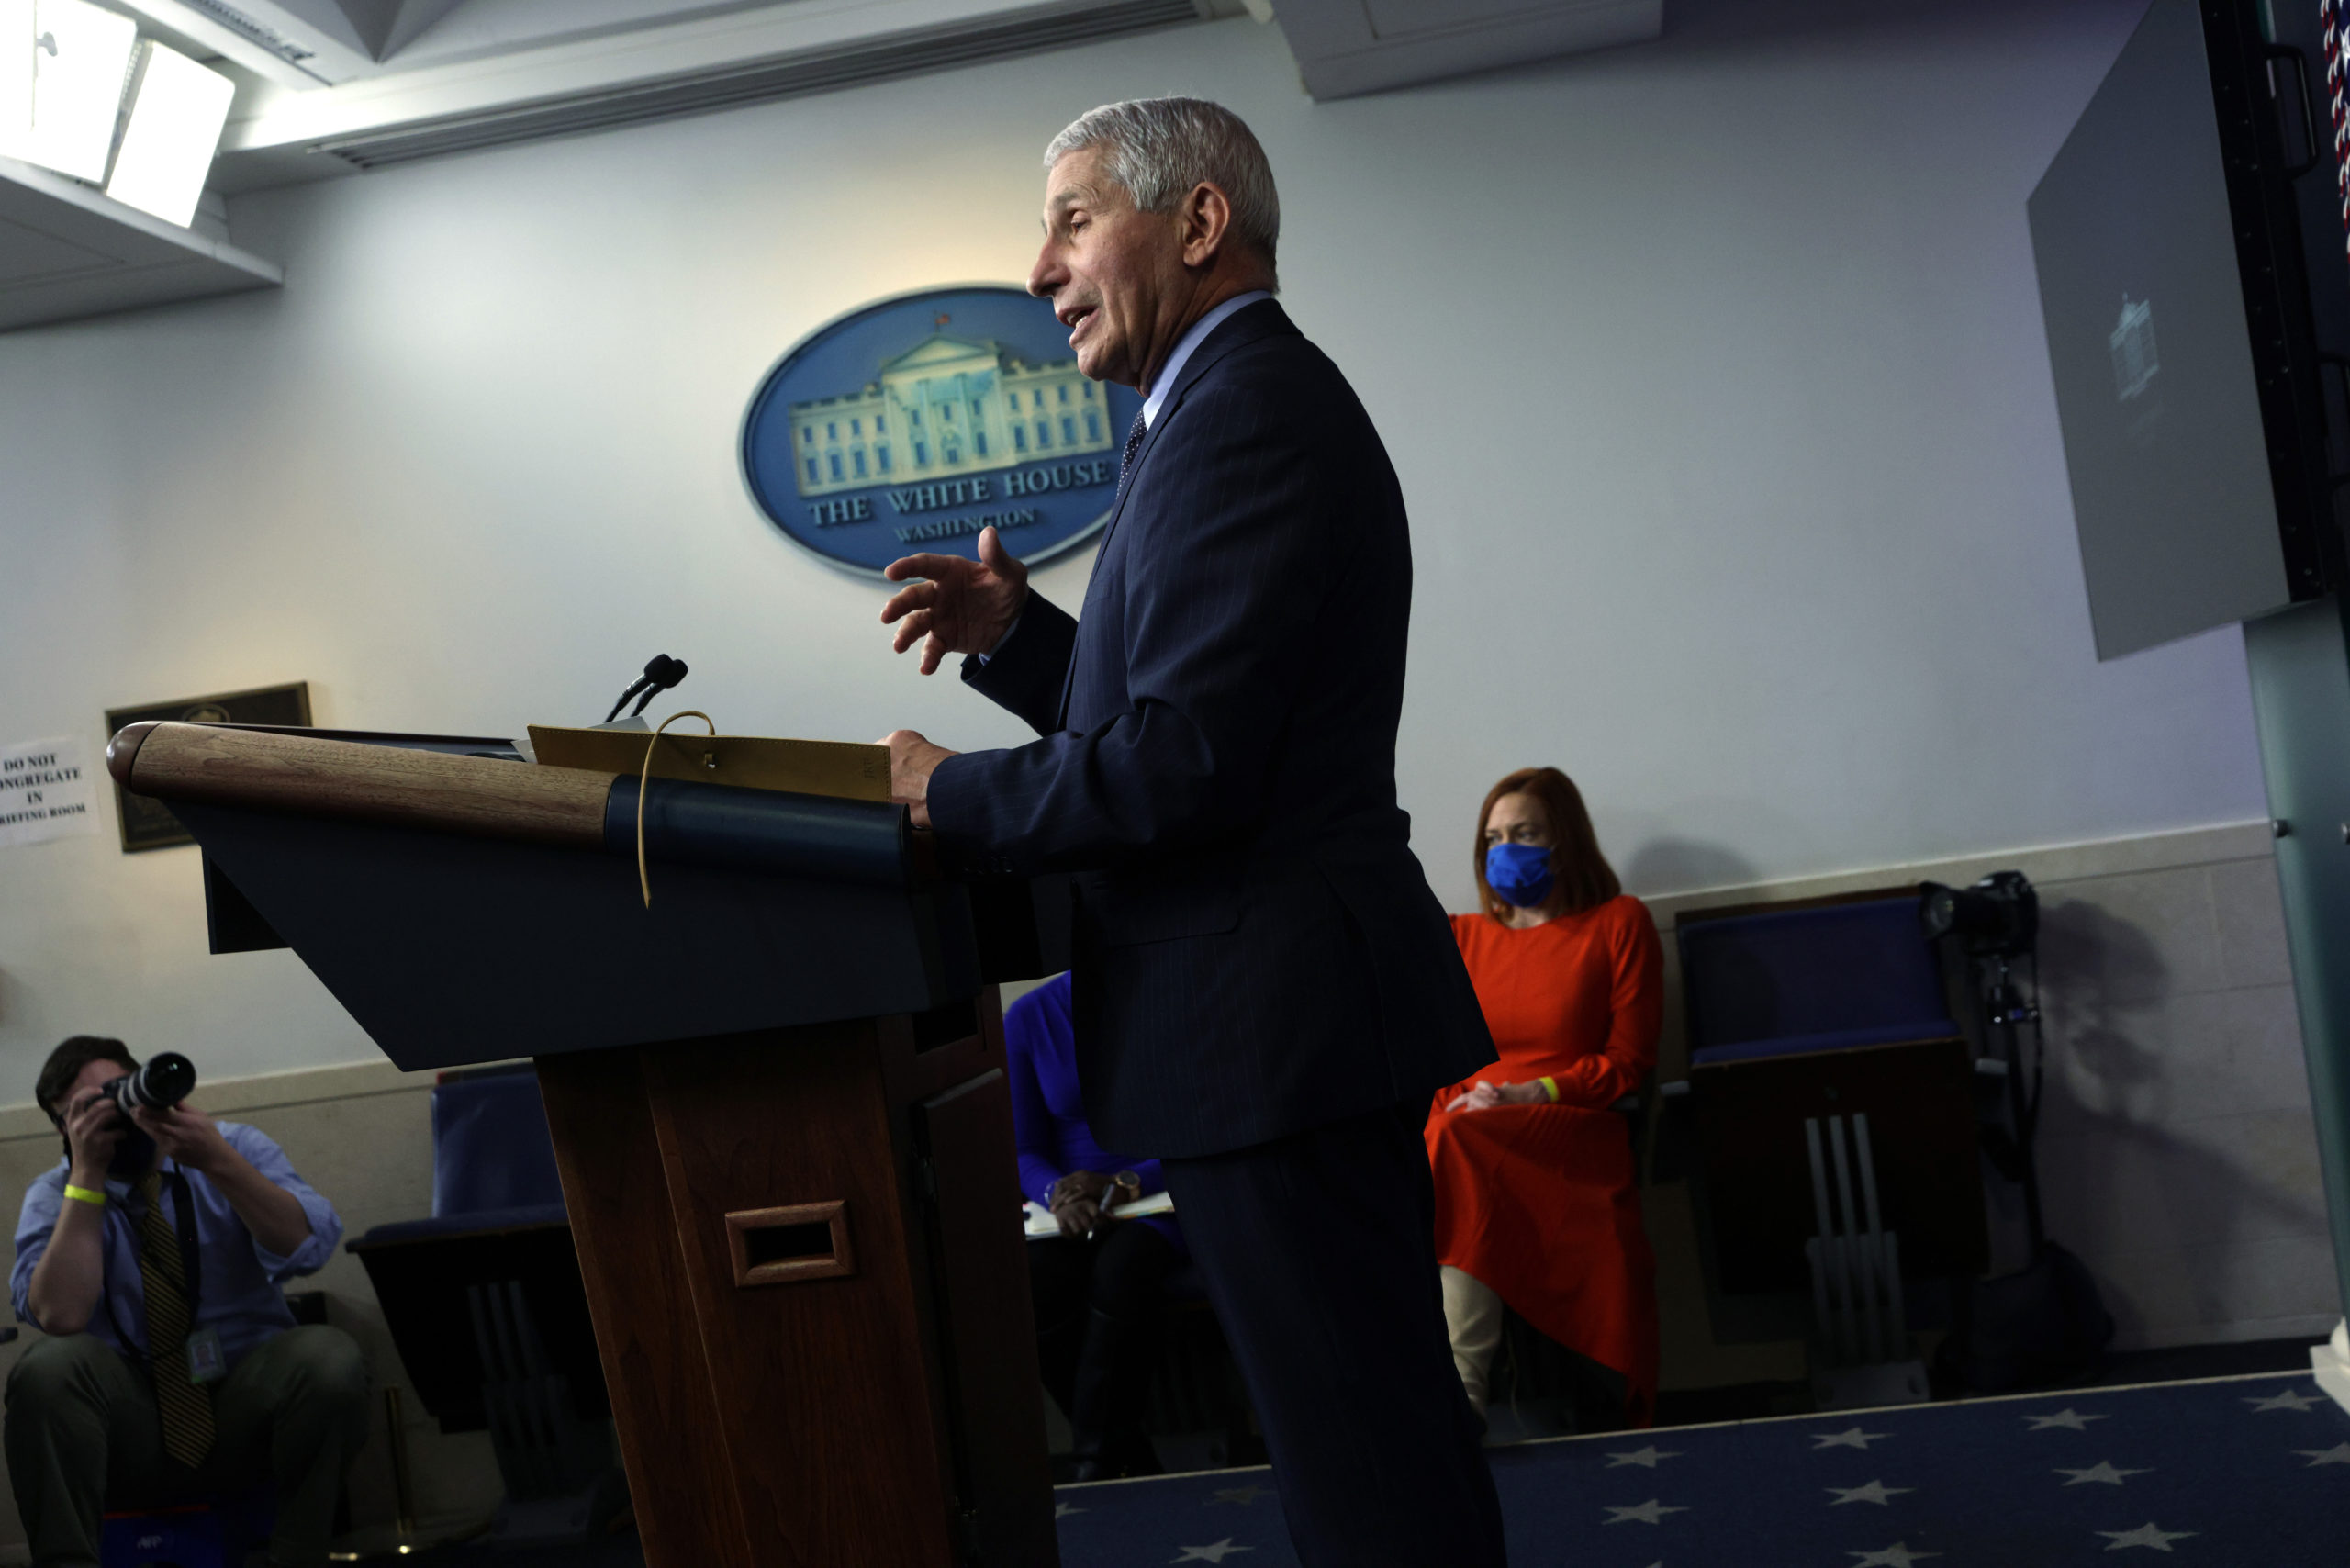 WASHINGTON, DC - JANUARY 21: Director of the National Institute of Allergy and Infectious Diseases Dr Anthony Fauci speaks as White House Press Secretary Jen Psaki listens during a White House press briefing at the James Brady Press Briefing Room of the White House January 21, 2021 in Washington, DC. Psaki held her second press briefing since President Joe Biden took office yesterday. (Photo by Alex Wong/Getty Images)